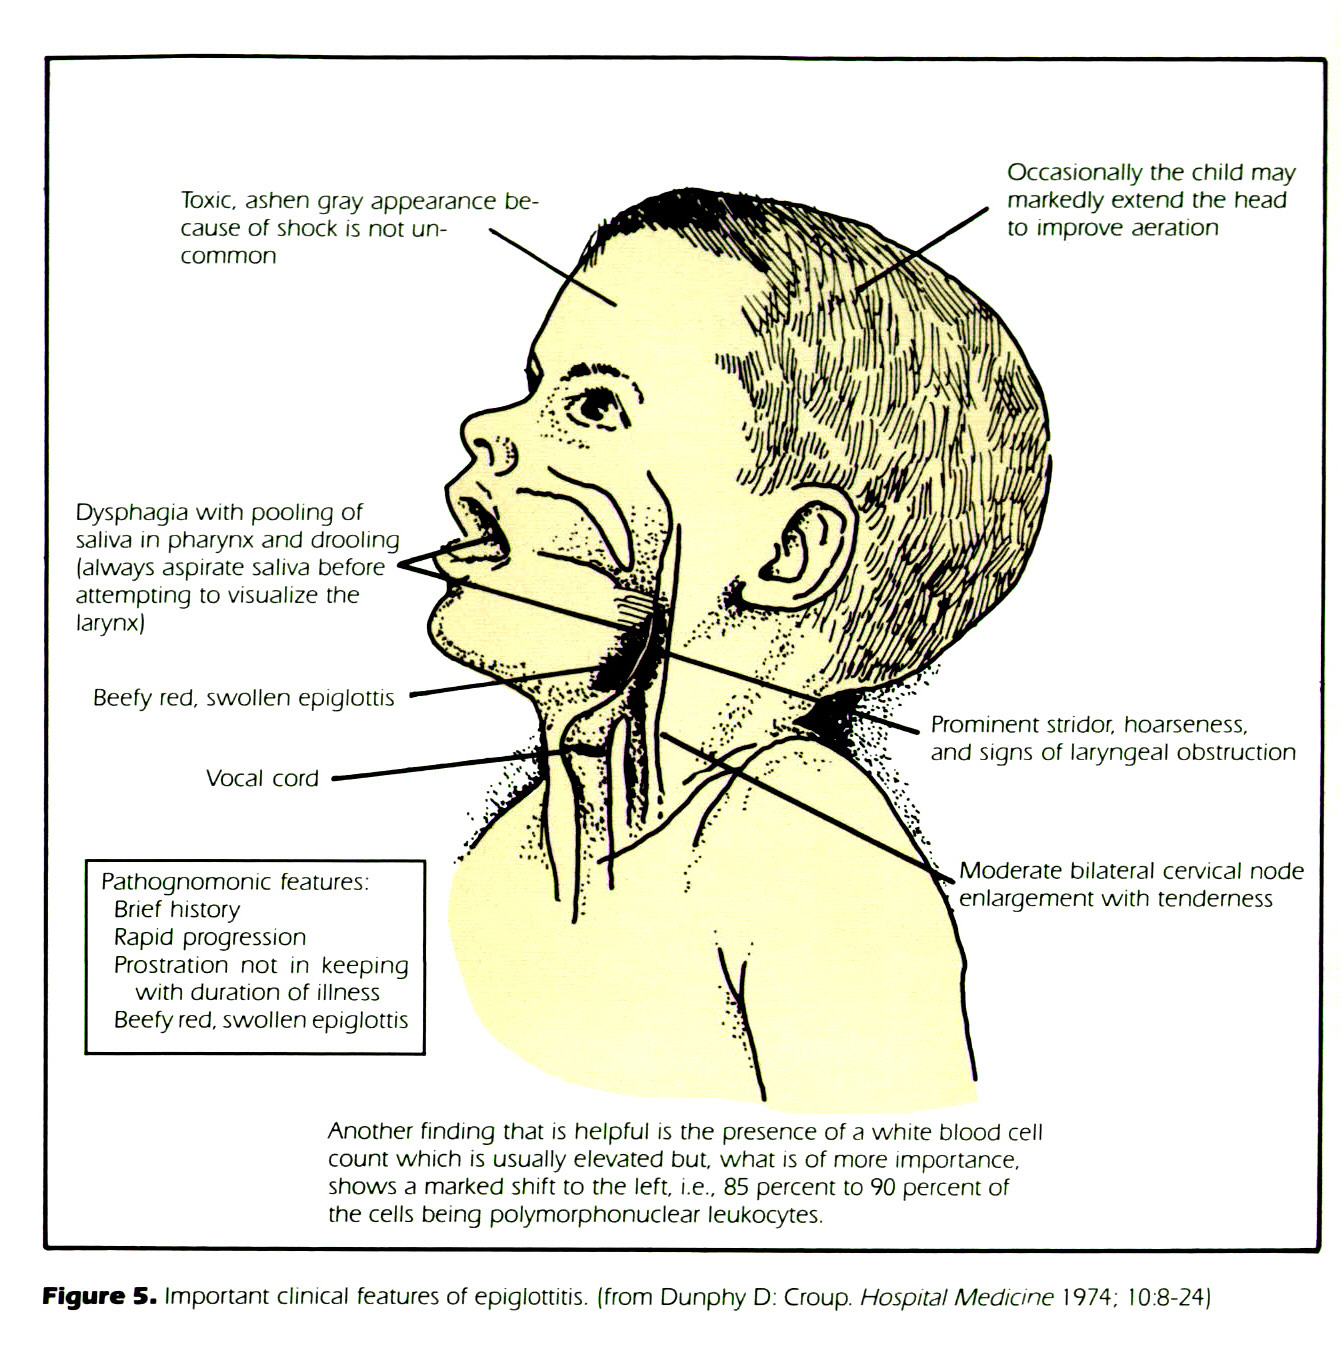 Figure 5. Important clinical features of epiglottitis, (from Dunphy D: Croup. Hospital Medicine 1 974; 1 0:8-24)